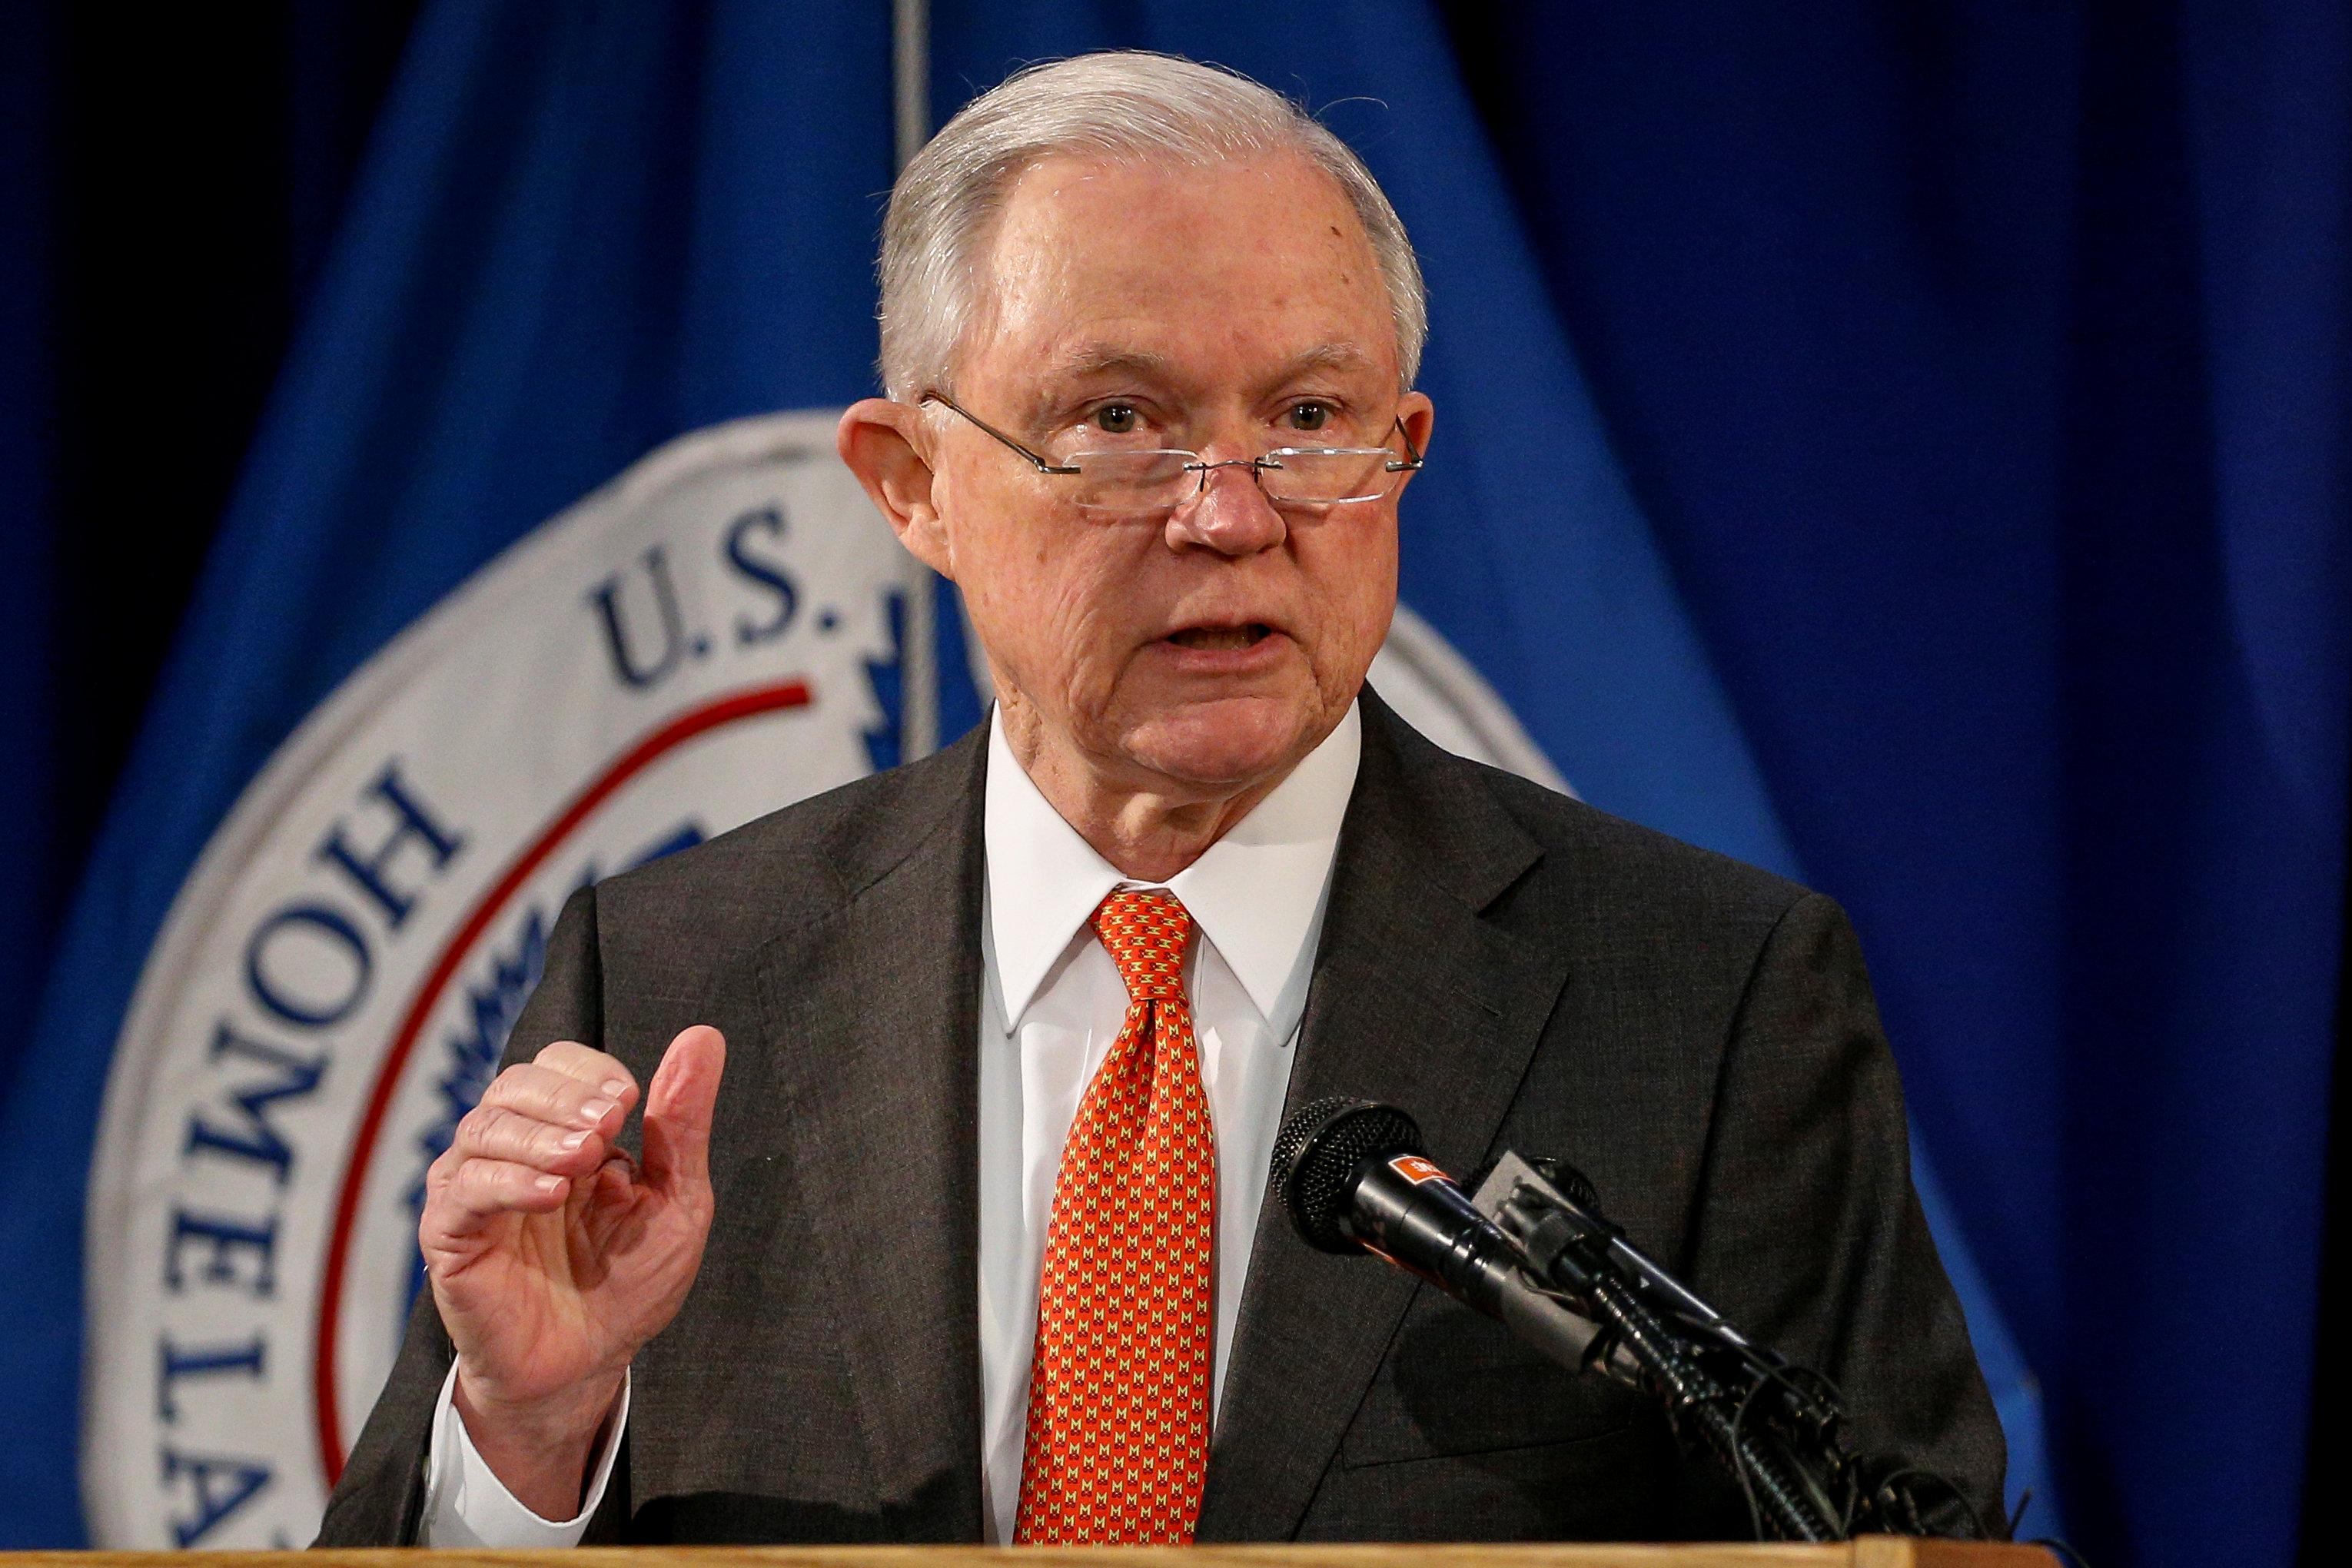 U.S. Attorney General Jeff Sessions speaks about the Trump Administration efforts to combat the opioid crisis at John F. Kennedy International Airport in New York City, New York, U.S., October 27, 2017. Brendan McDermid